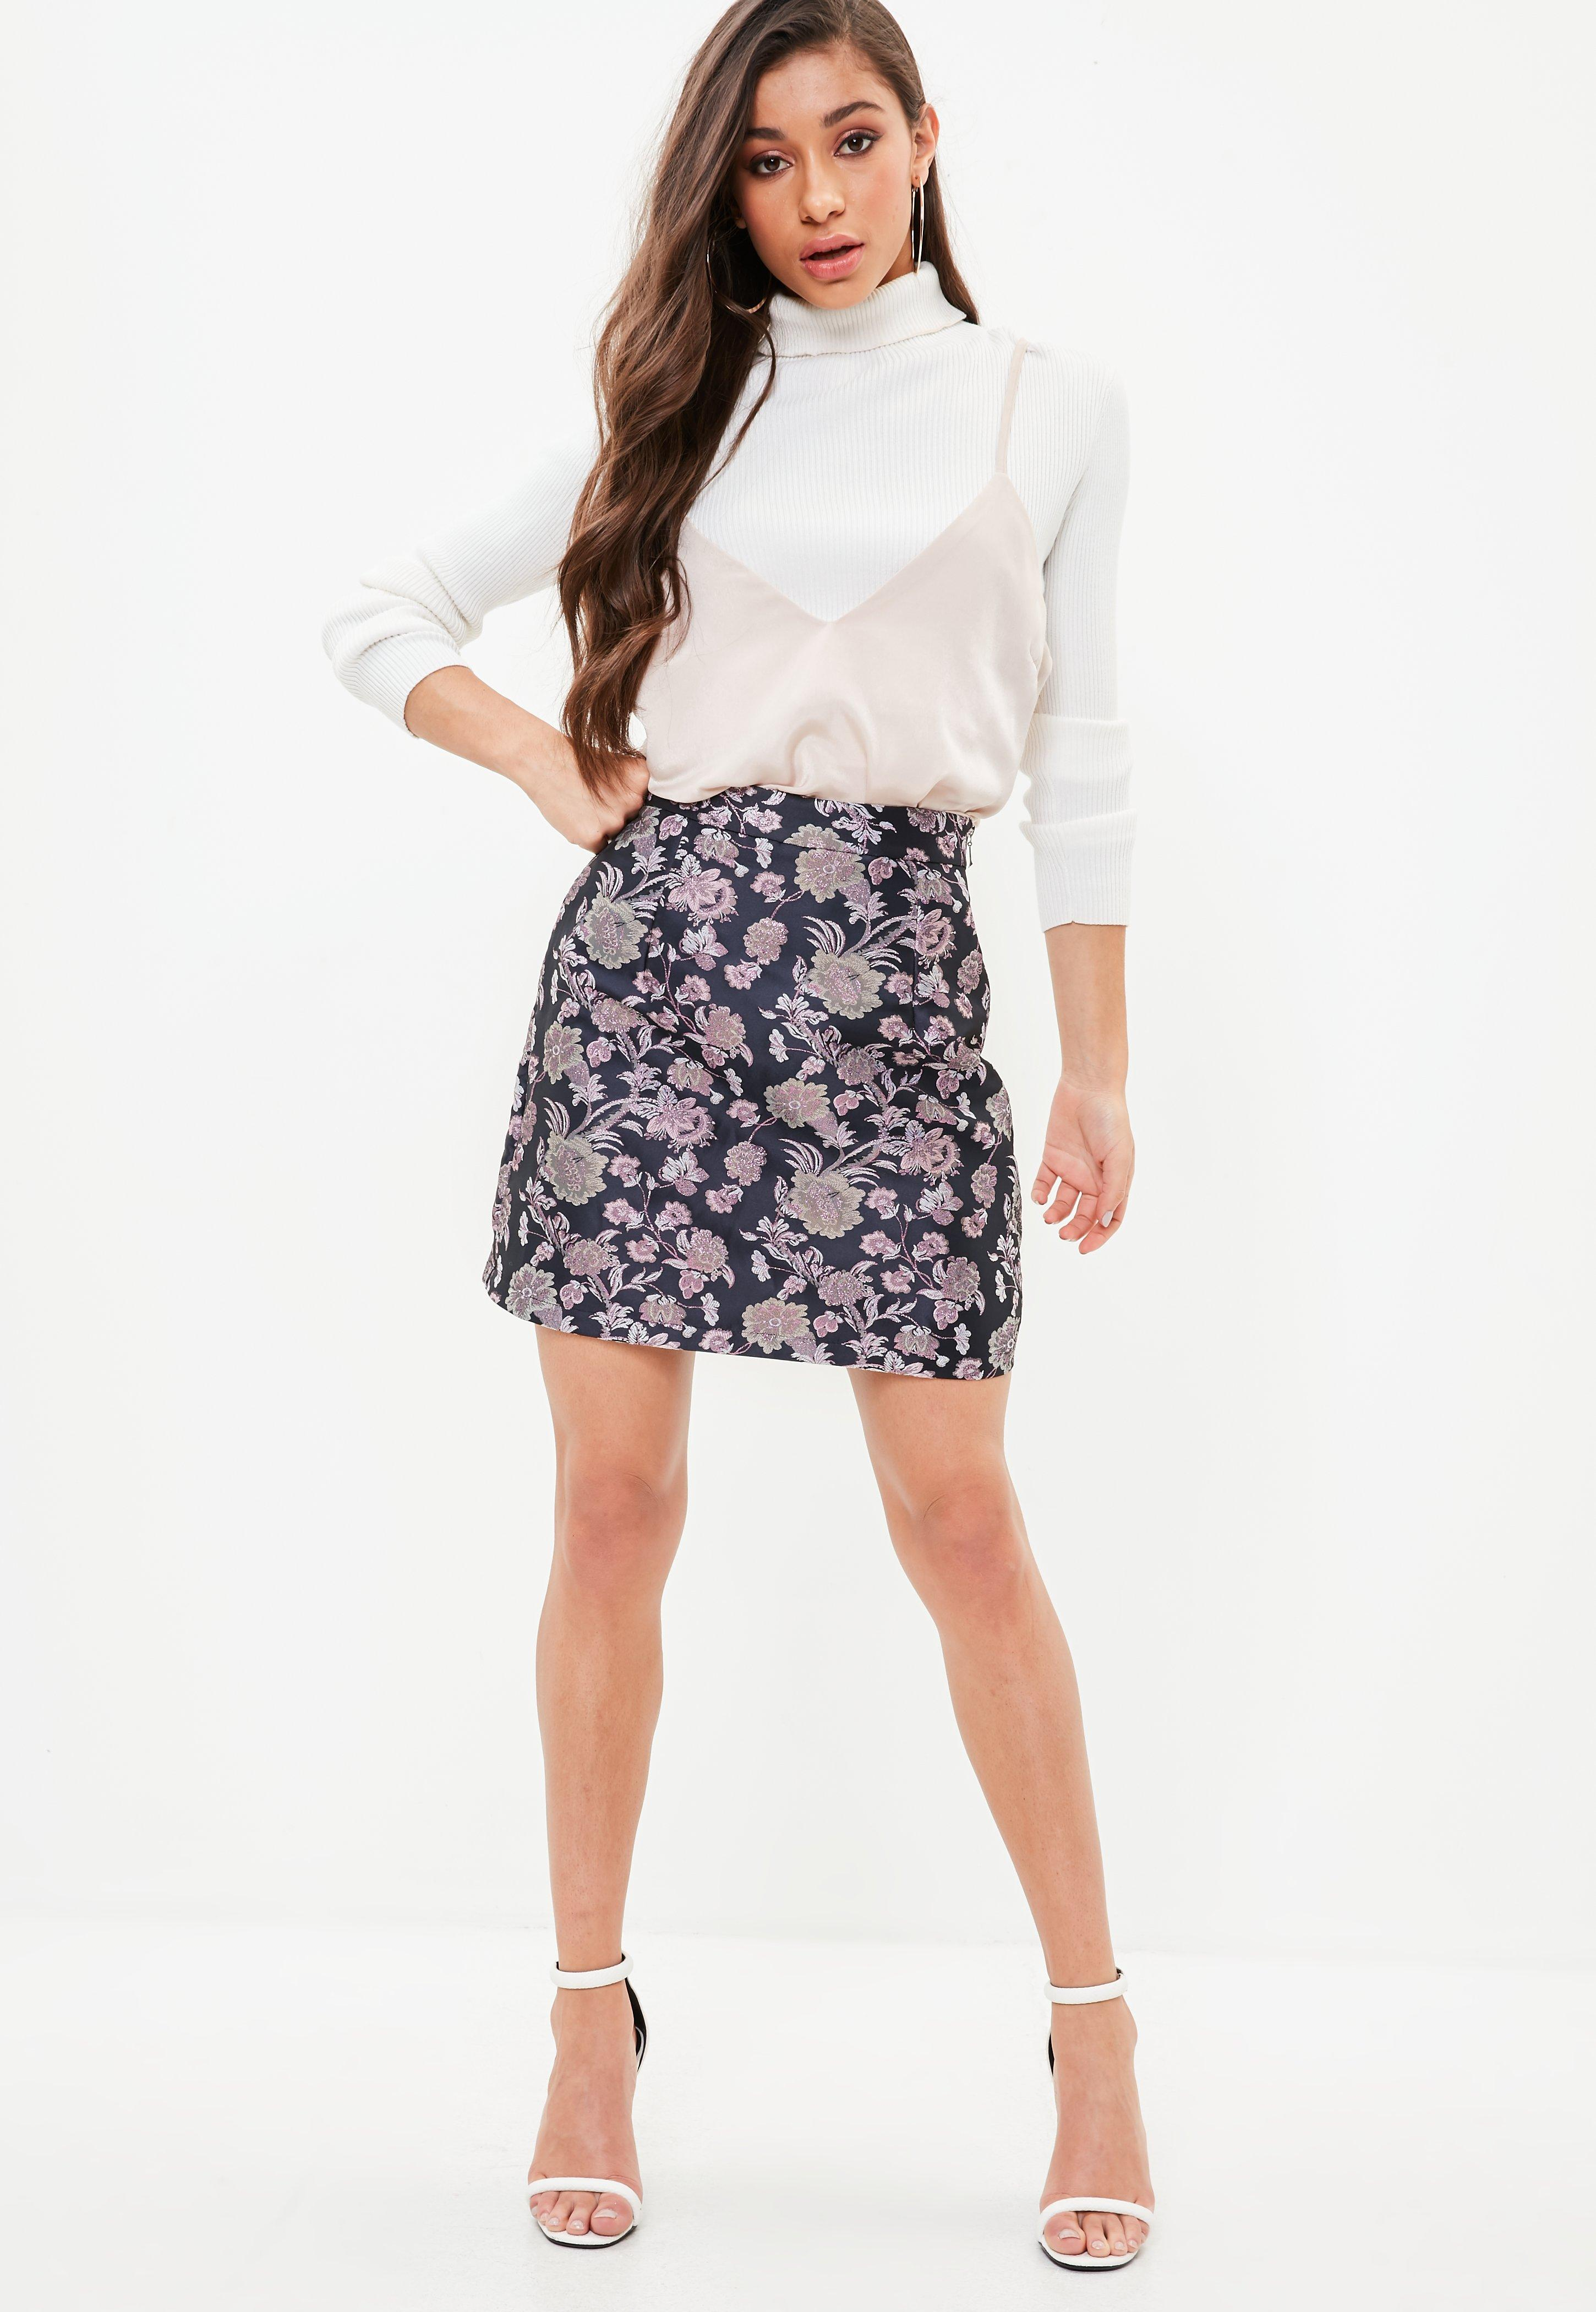 Outlet Pay With Visa Missguided Navy A-Line Jacquard Mini Skirt Huge Surprise Online Free Shipping Footaction Cheap Discounts Buy Cheap Store 1NllcN